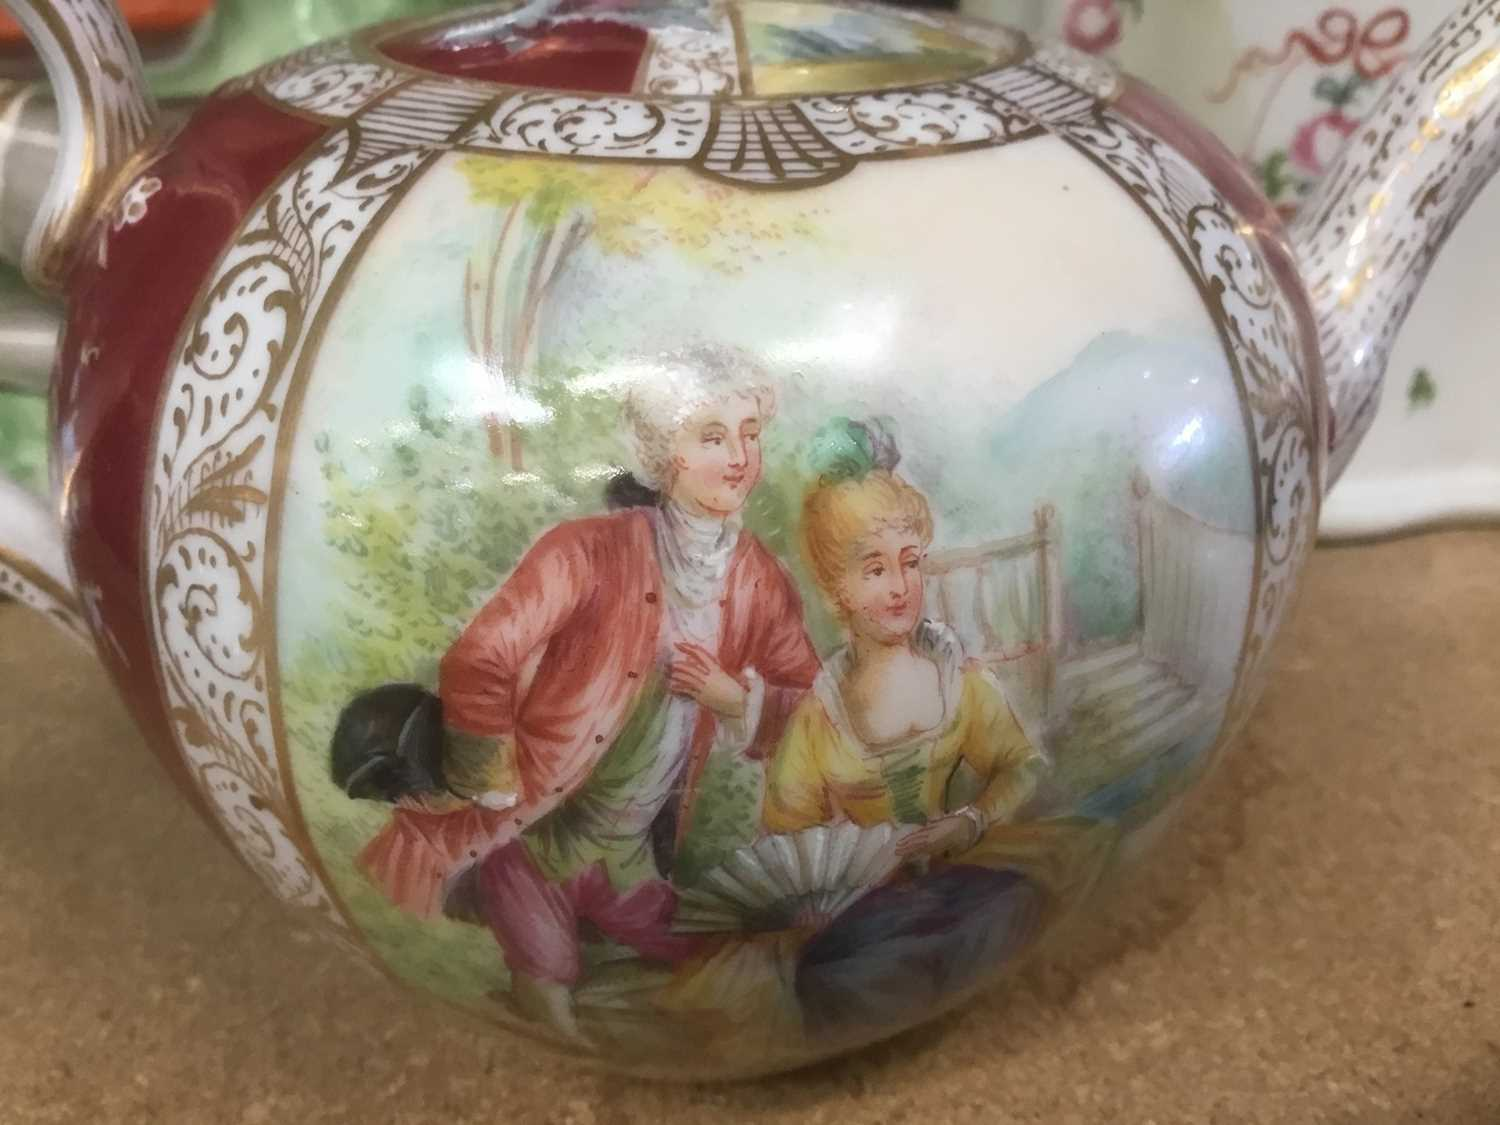 Meissen porcelain teapot (cancelled mark so a 'second'), Newhall teapot, Staffordshire greyhound - Image 3 of 6